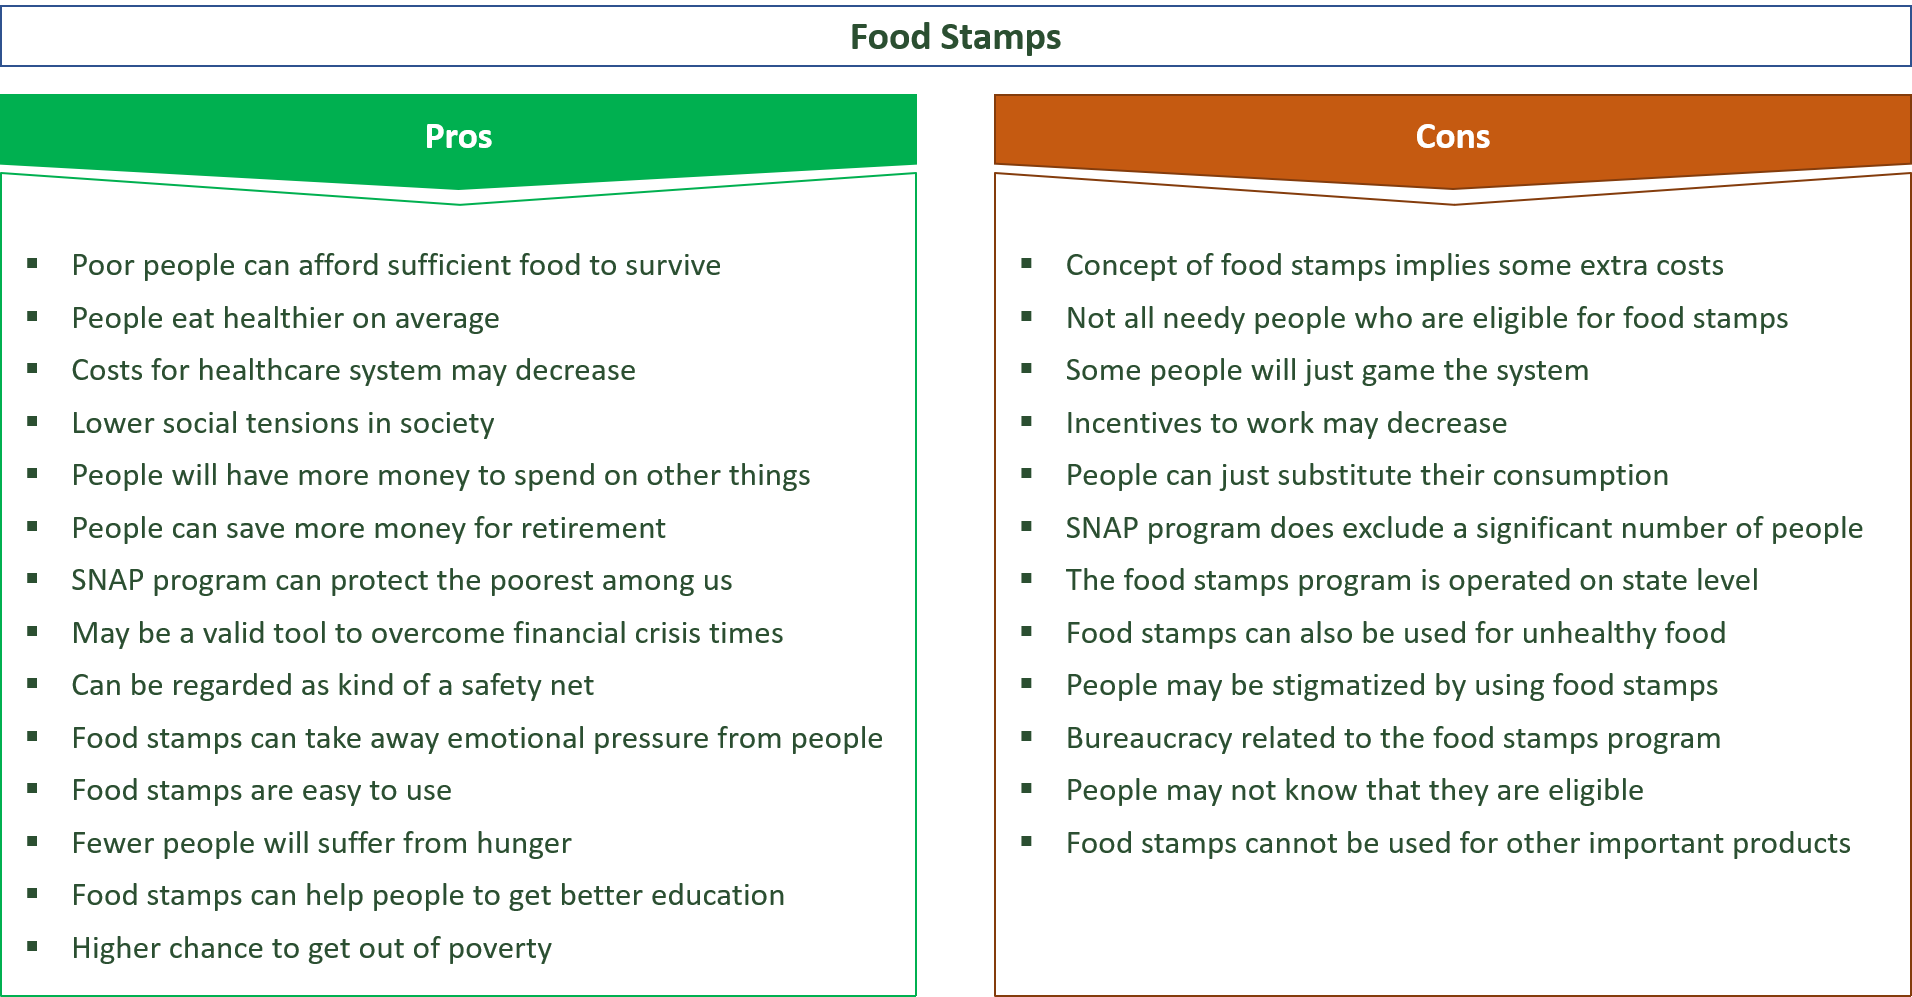 advantages and disadvantages of food stamps